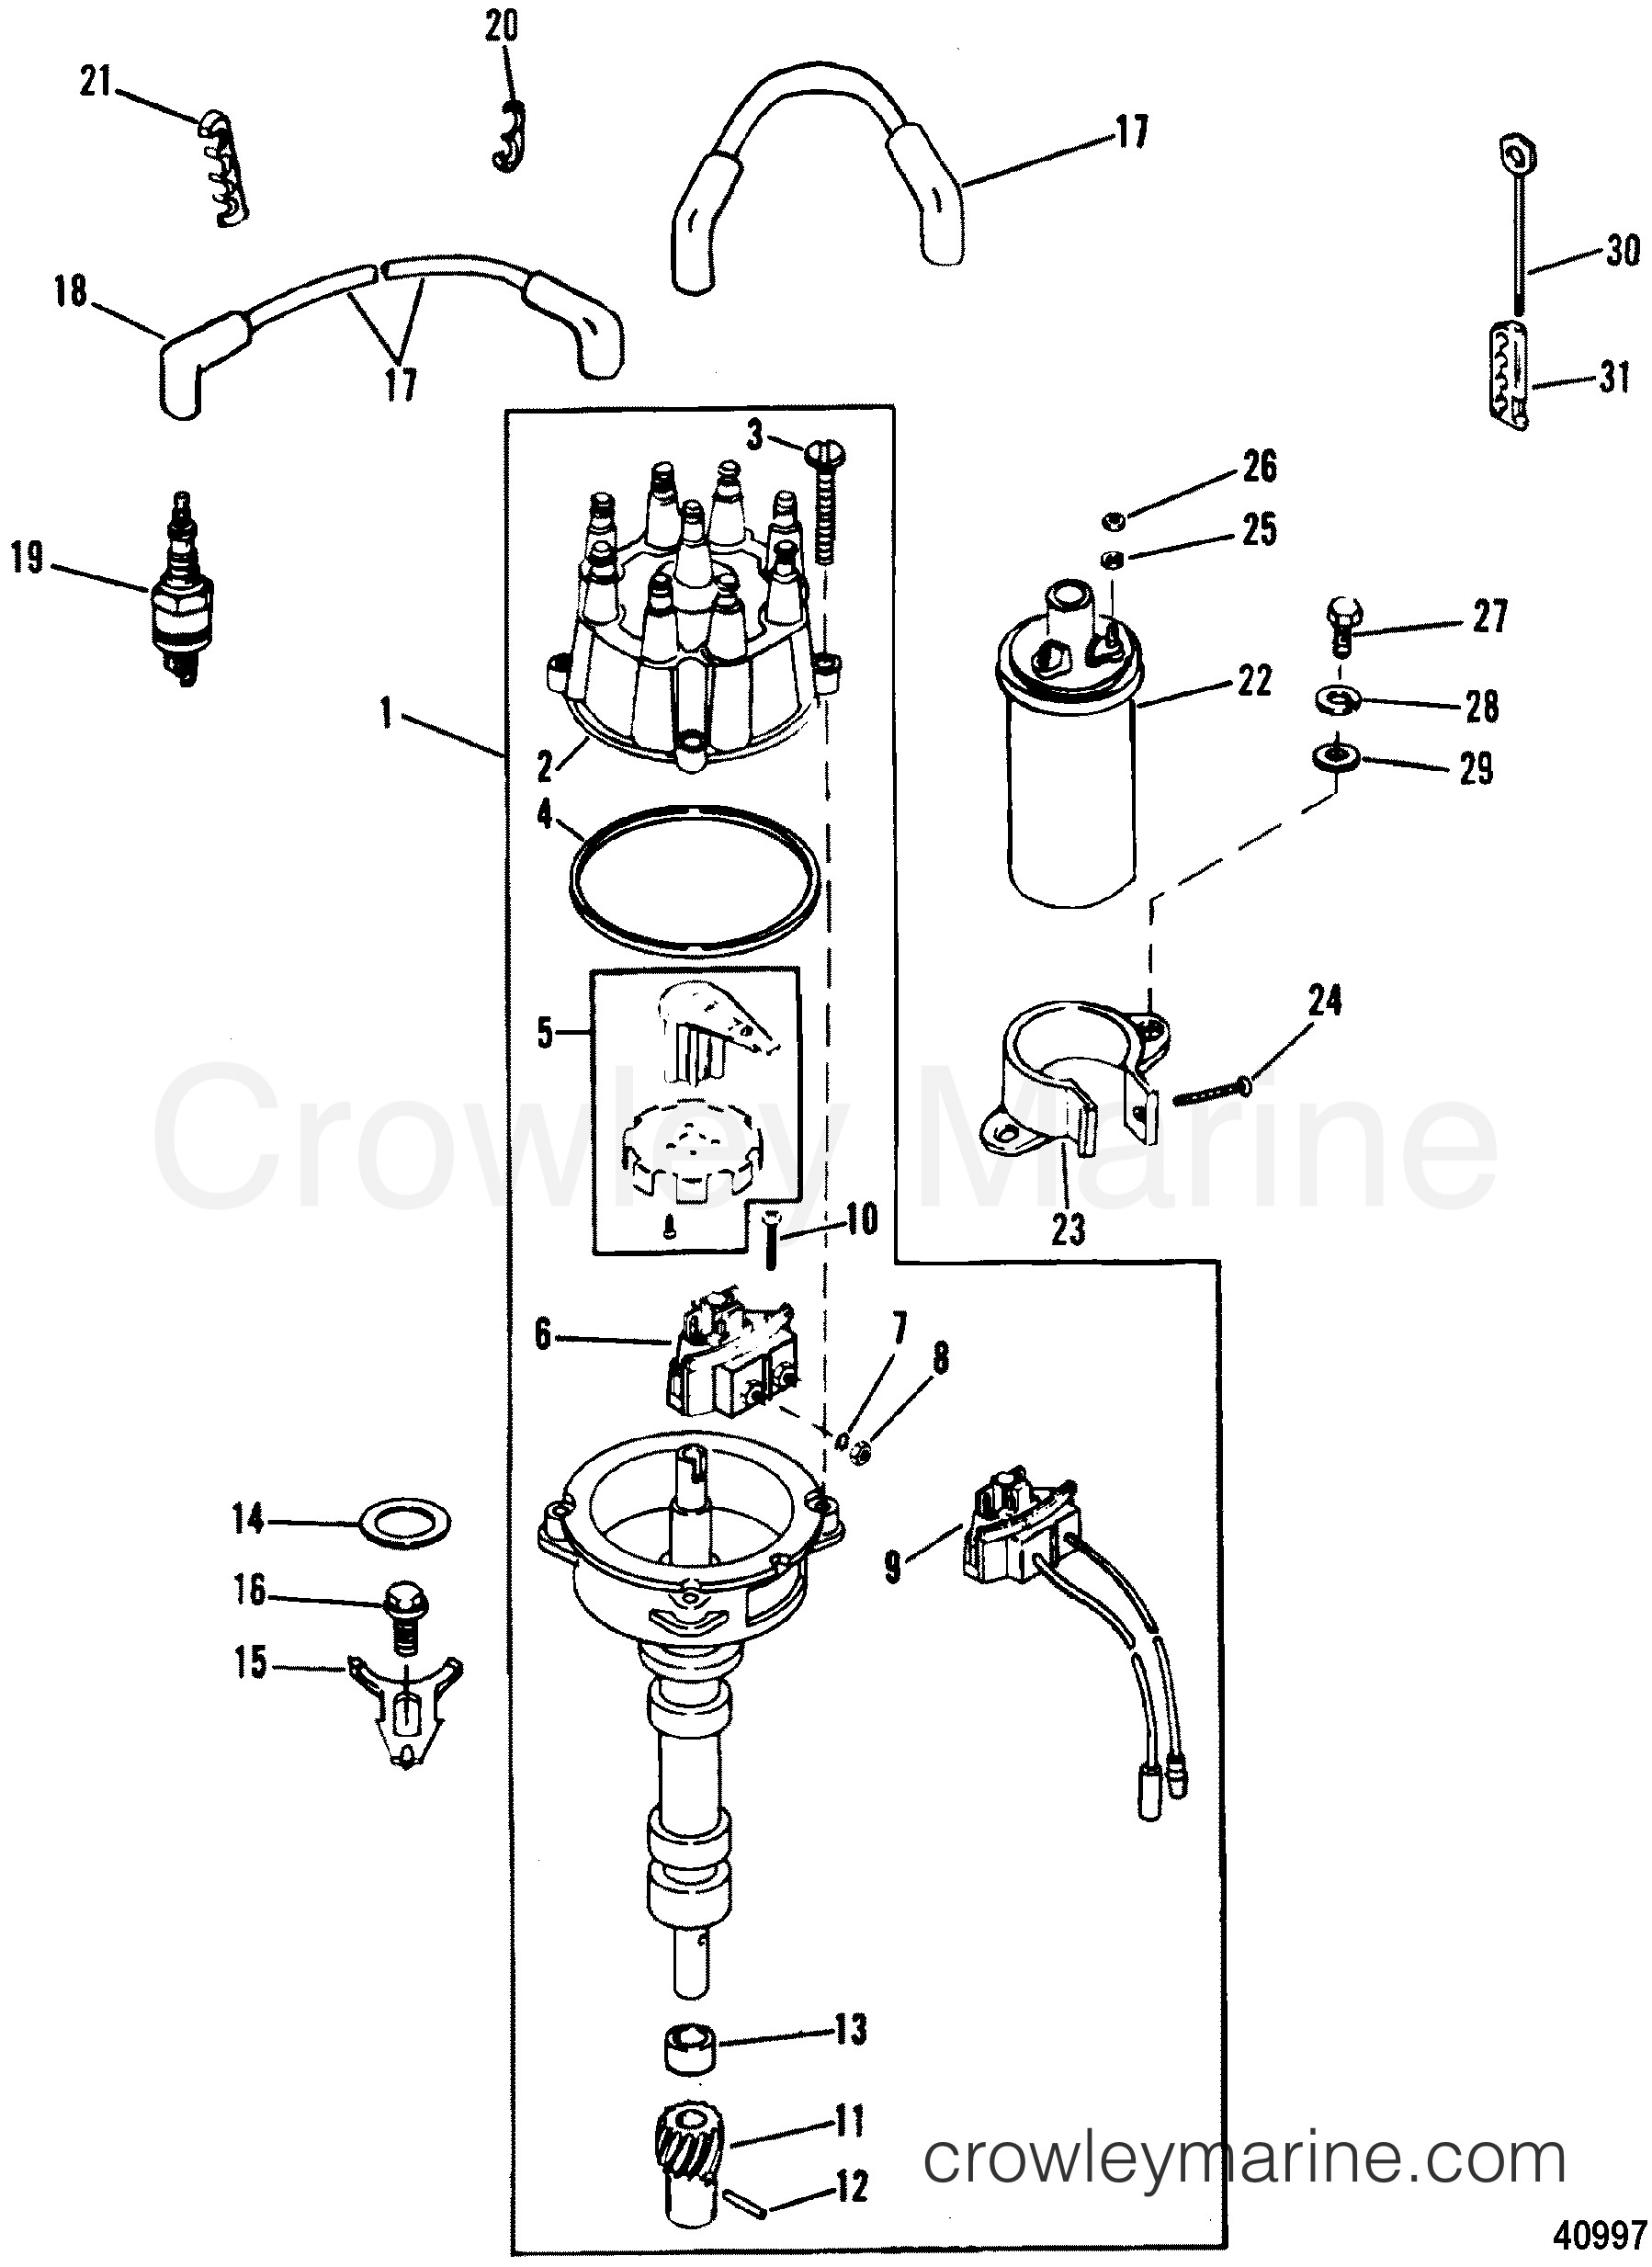 Mercruiser 4 3 Distributor Wiring Diagram Wiring Diagram